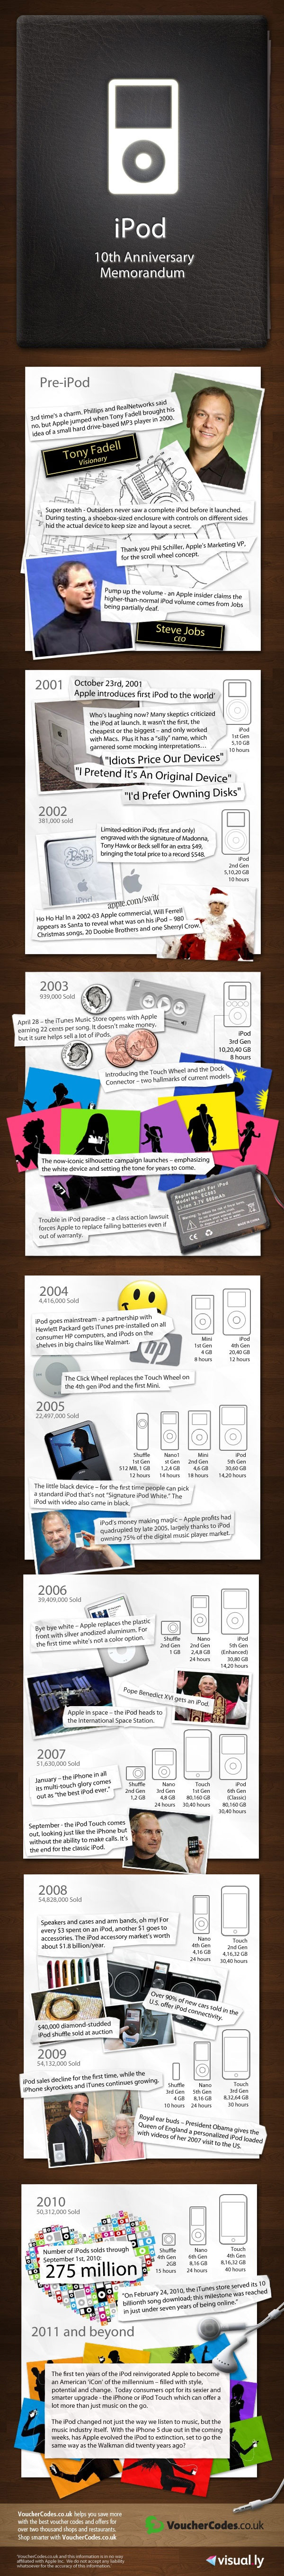 Ten Year History of the iPod